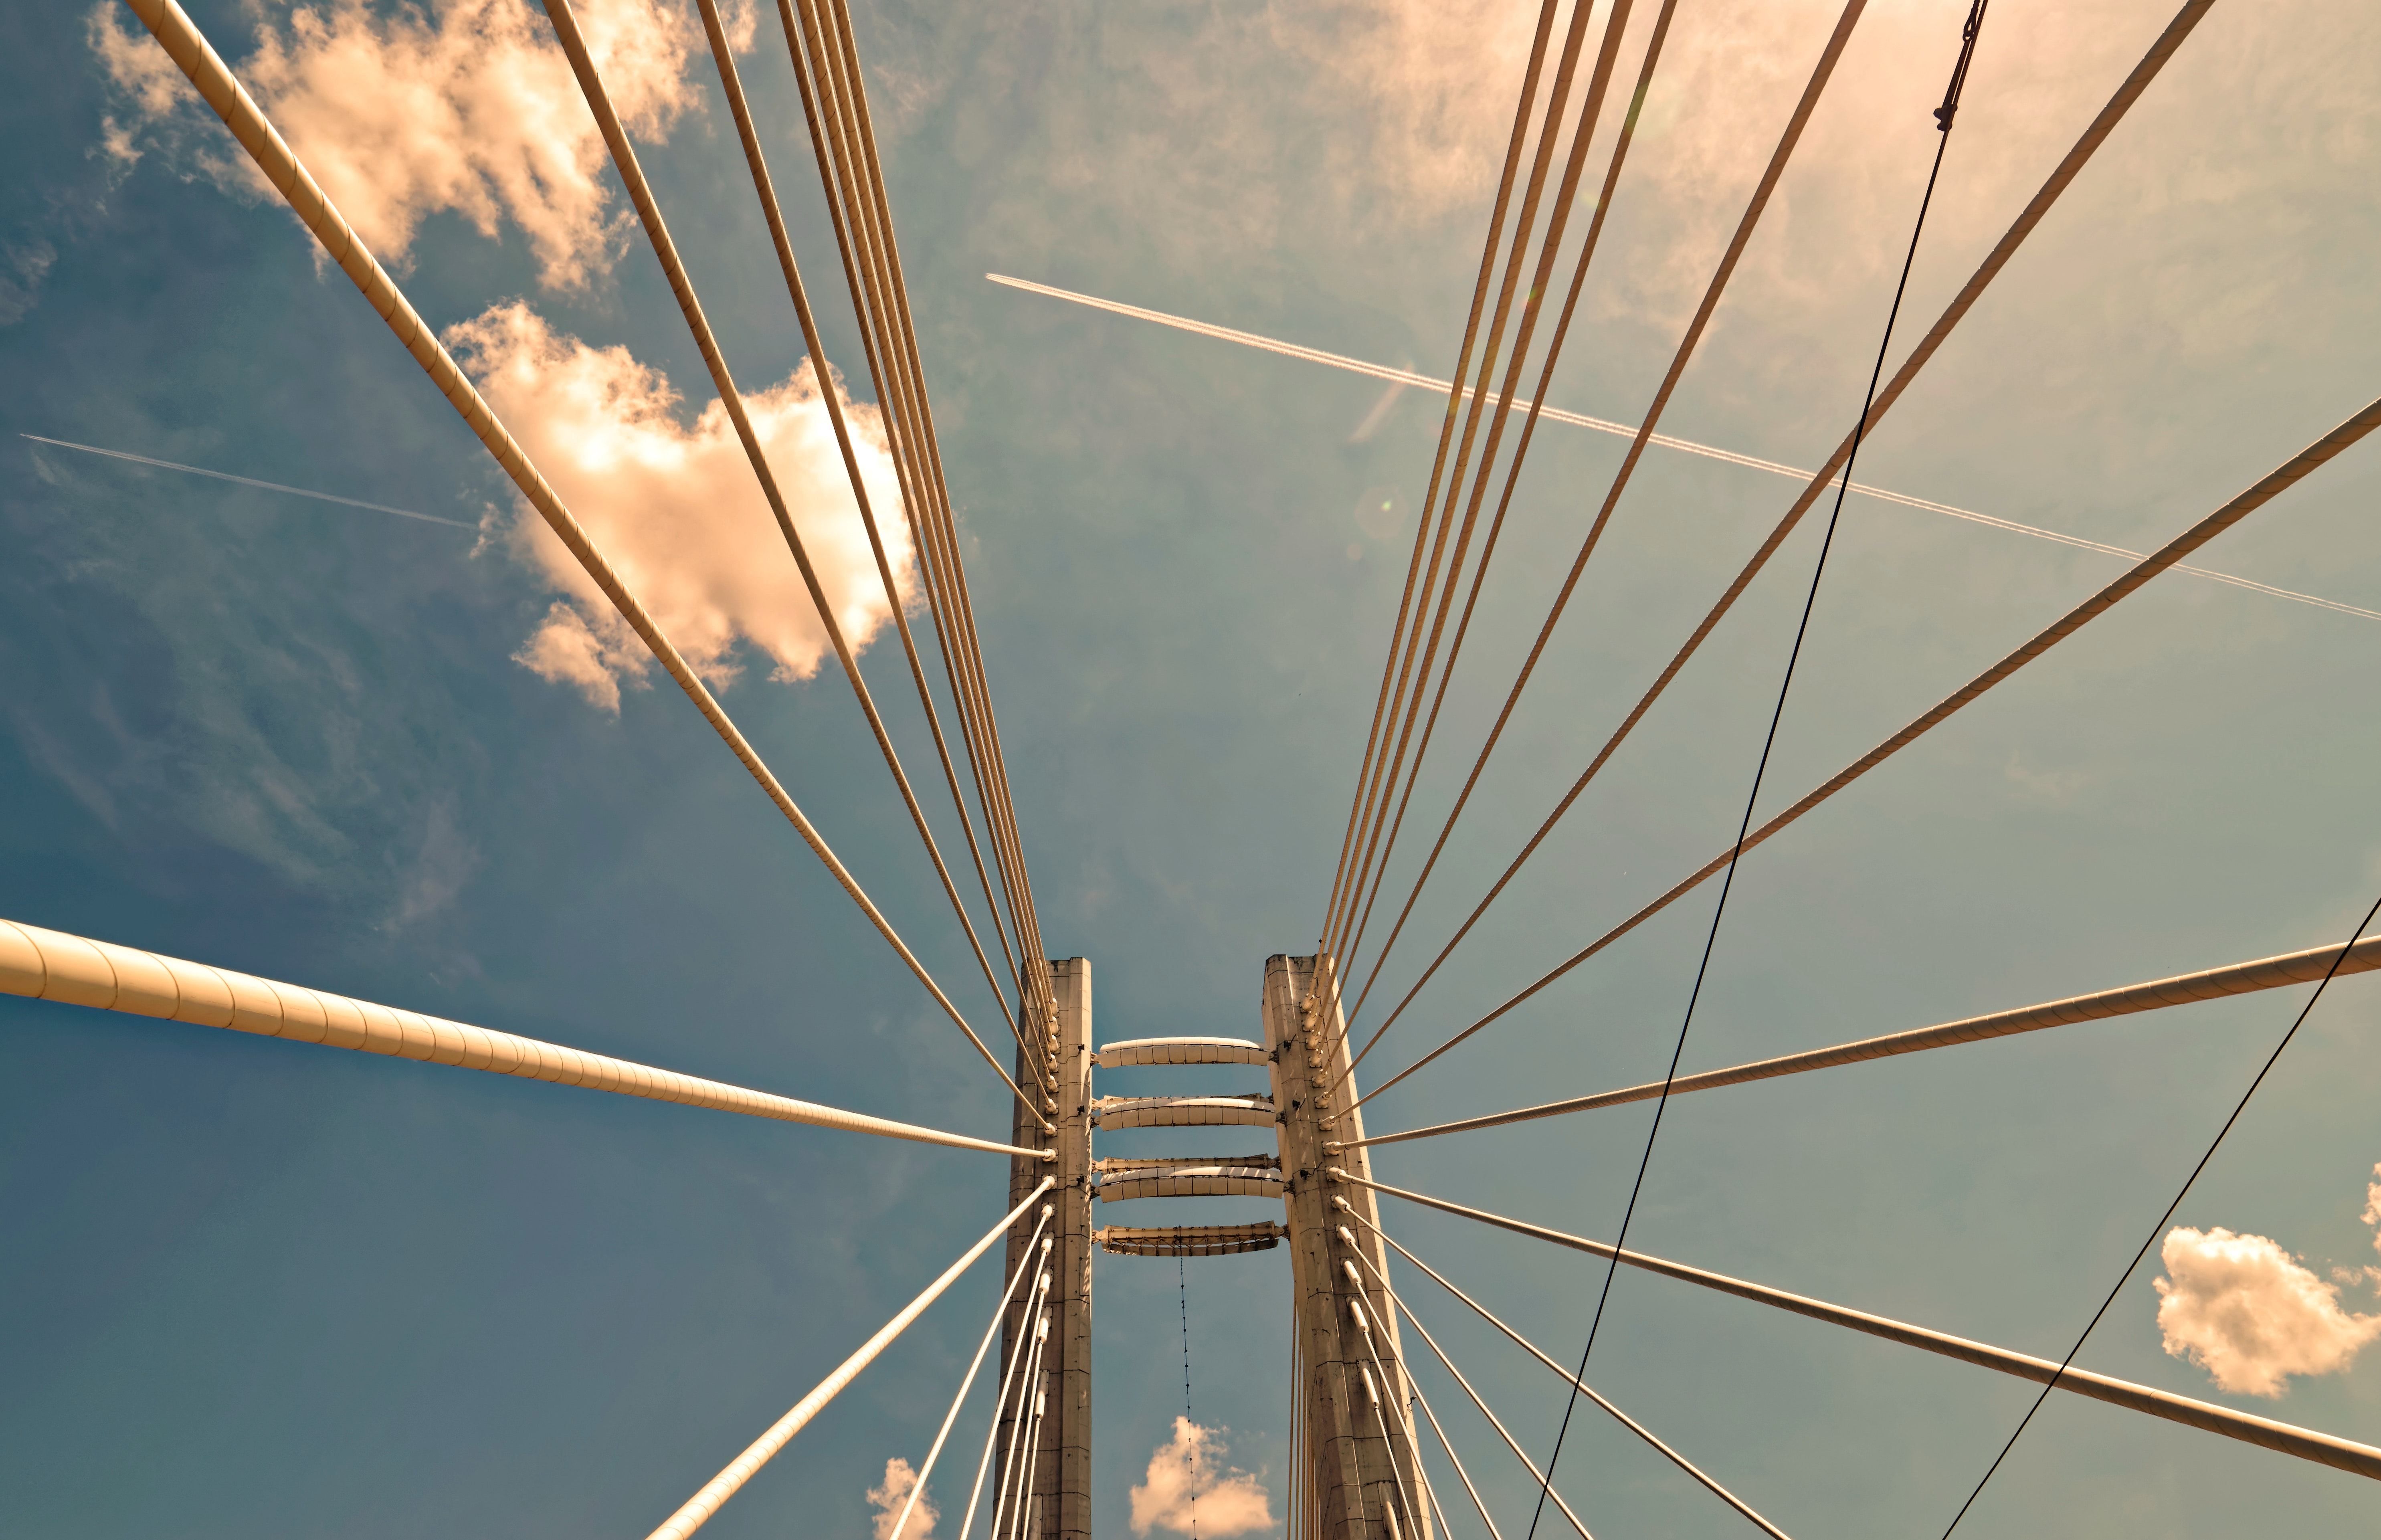 Low angle photo of a bridge under a blue sky and white clouds